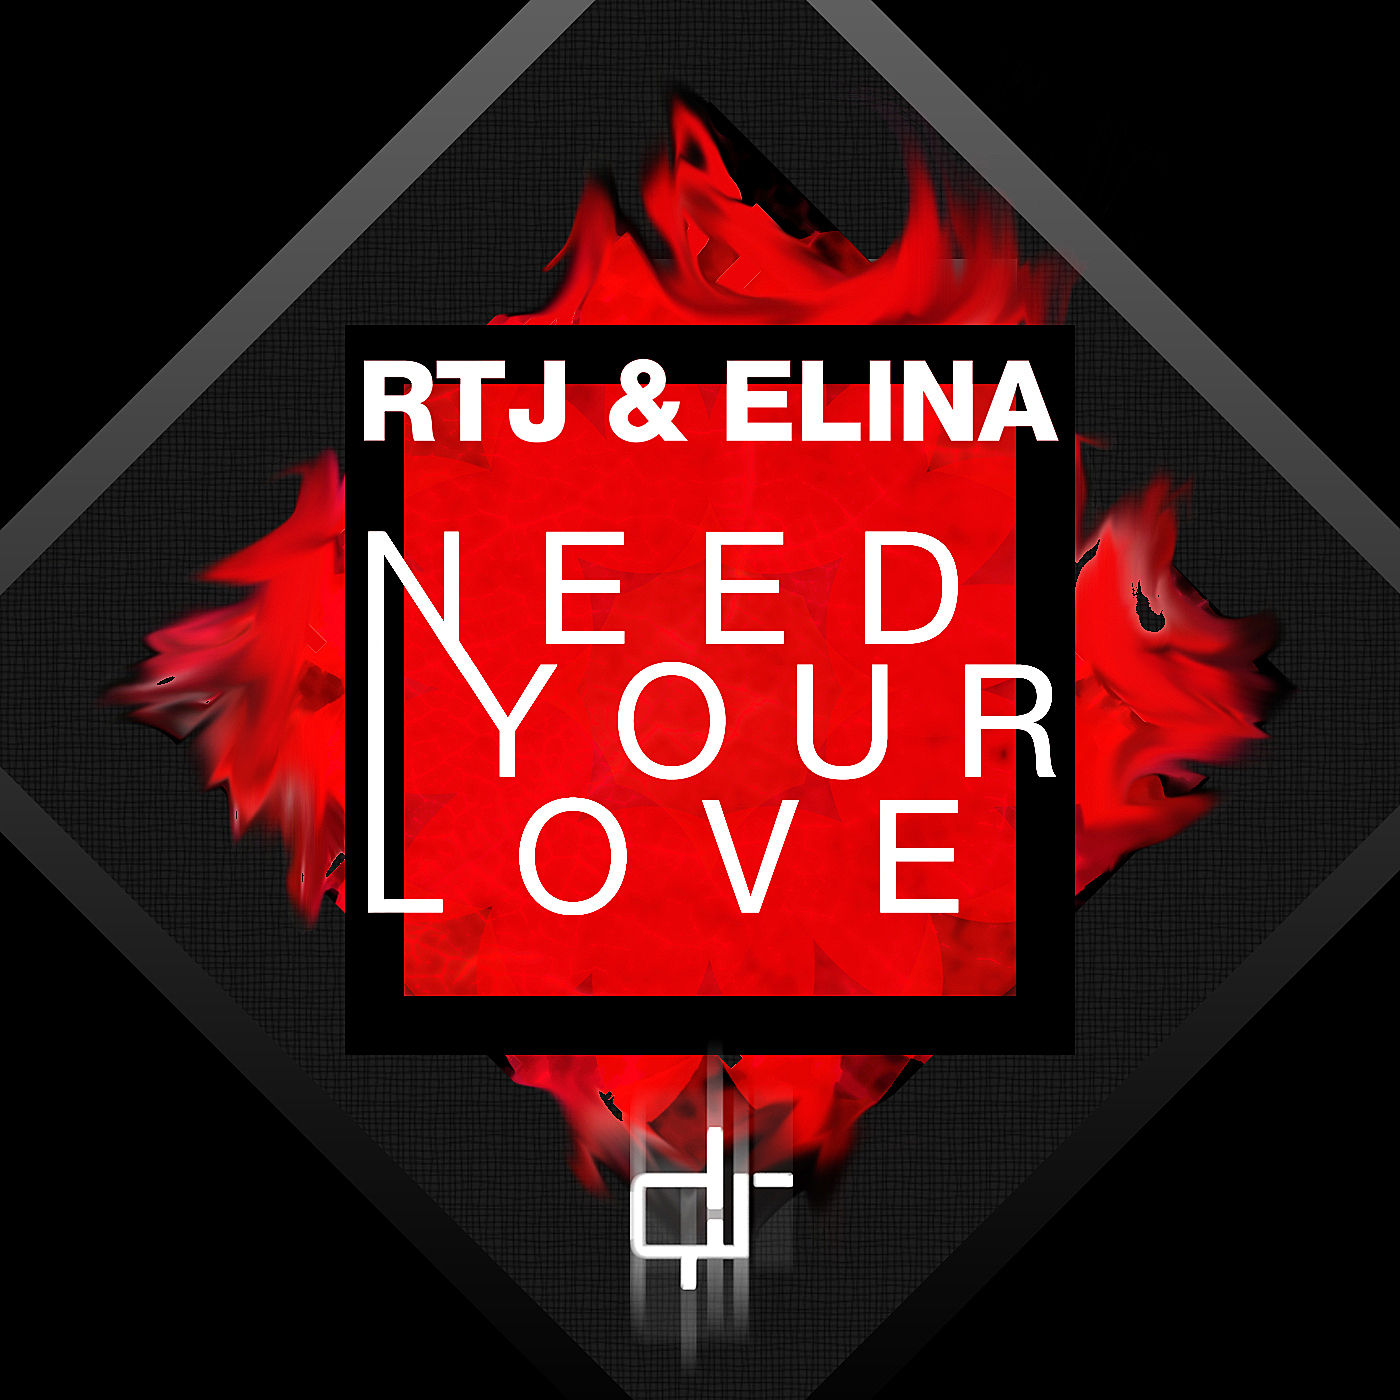 Need Your Love (RTJ, ELINA Original Mix)